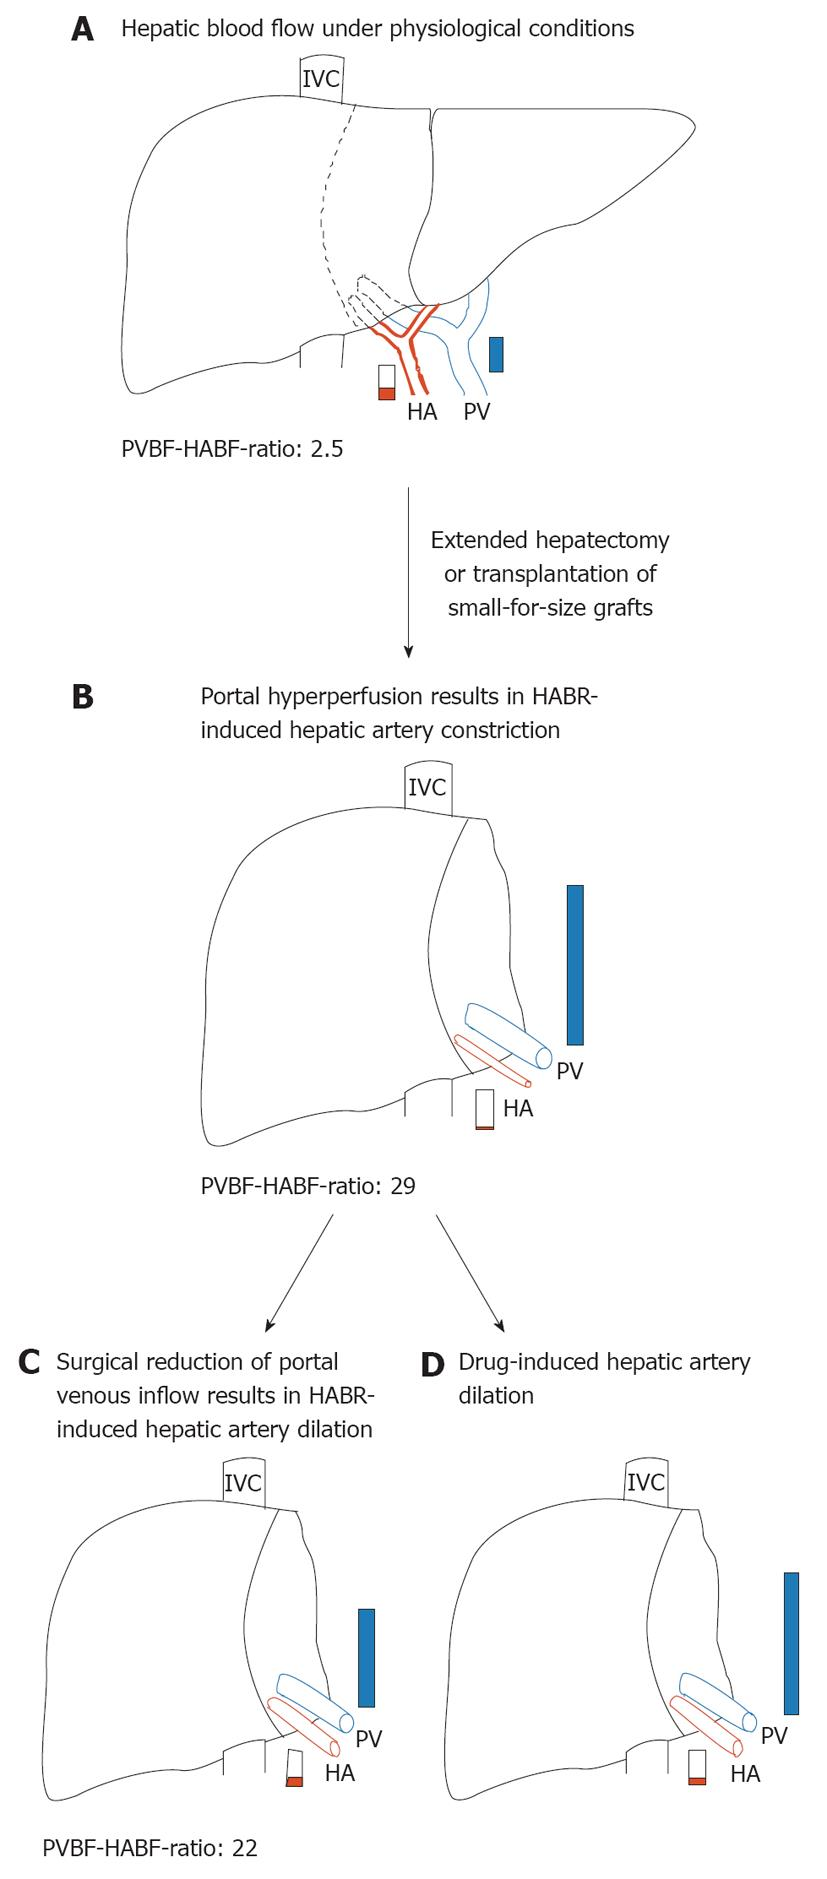 Regulation of hepatic blood flow the hepatic arterial buffer a preoperative hepatic blood flow in a donor liver or before extended hepatectomy representing a normal portal vein blood flow hepatic artery blood geenschuldenfo Images